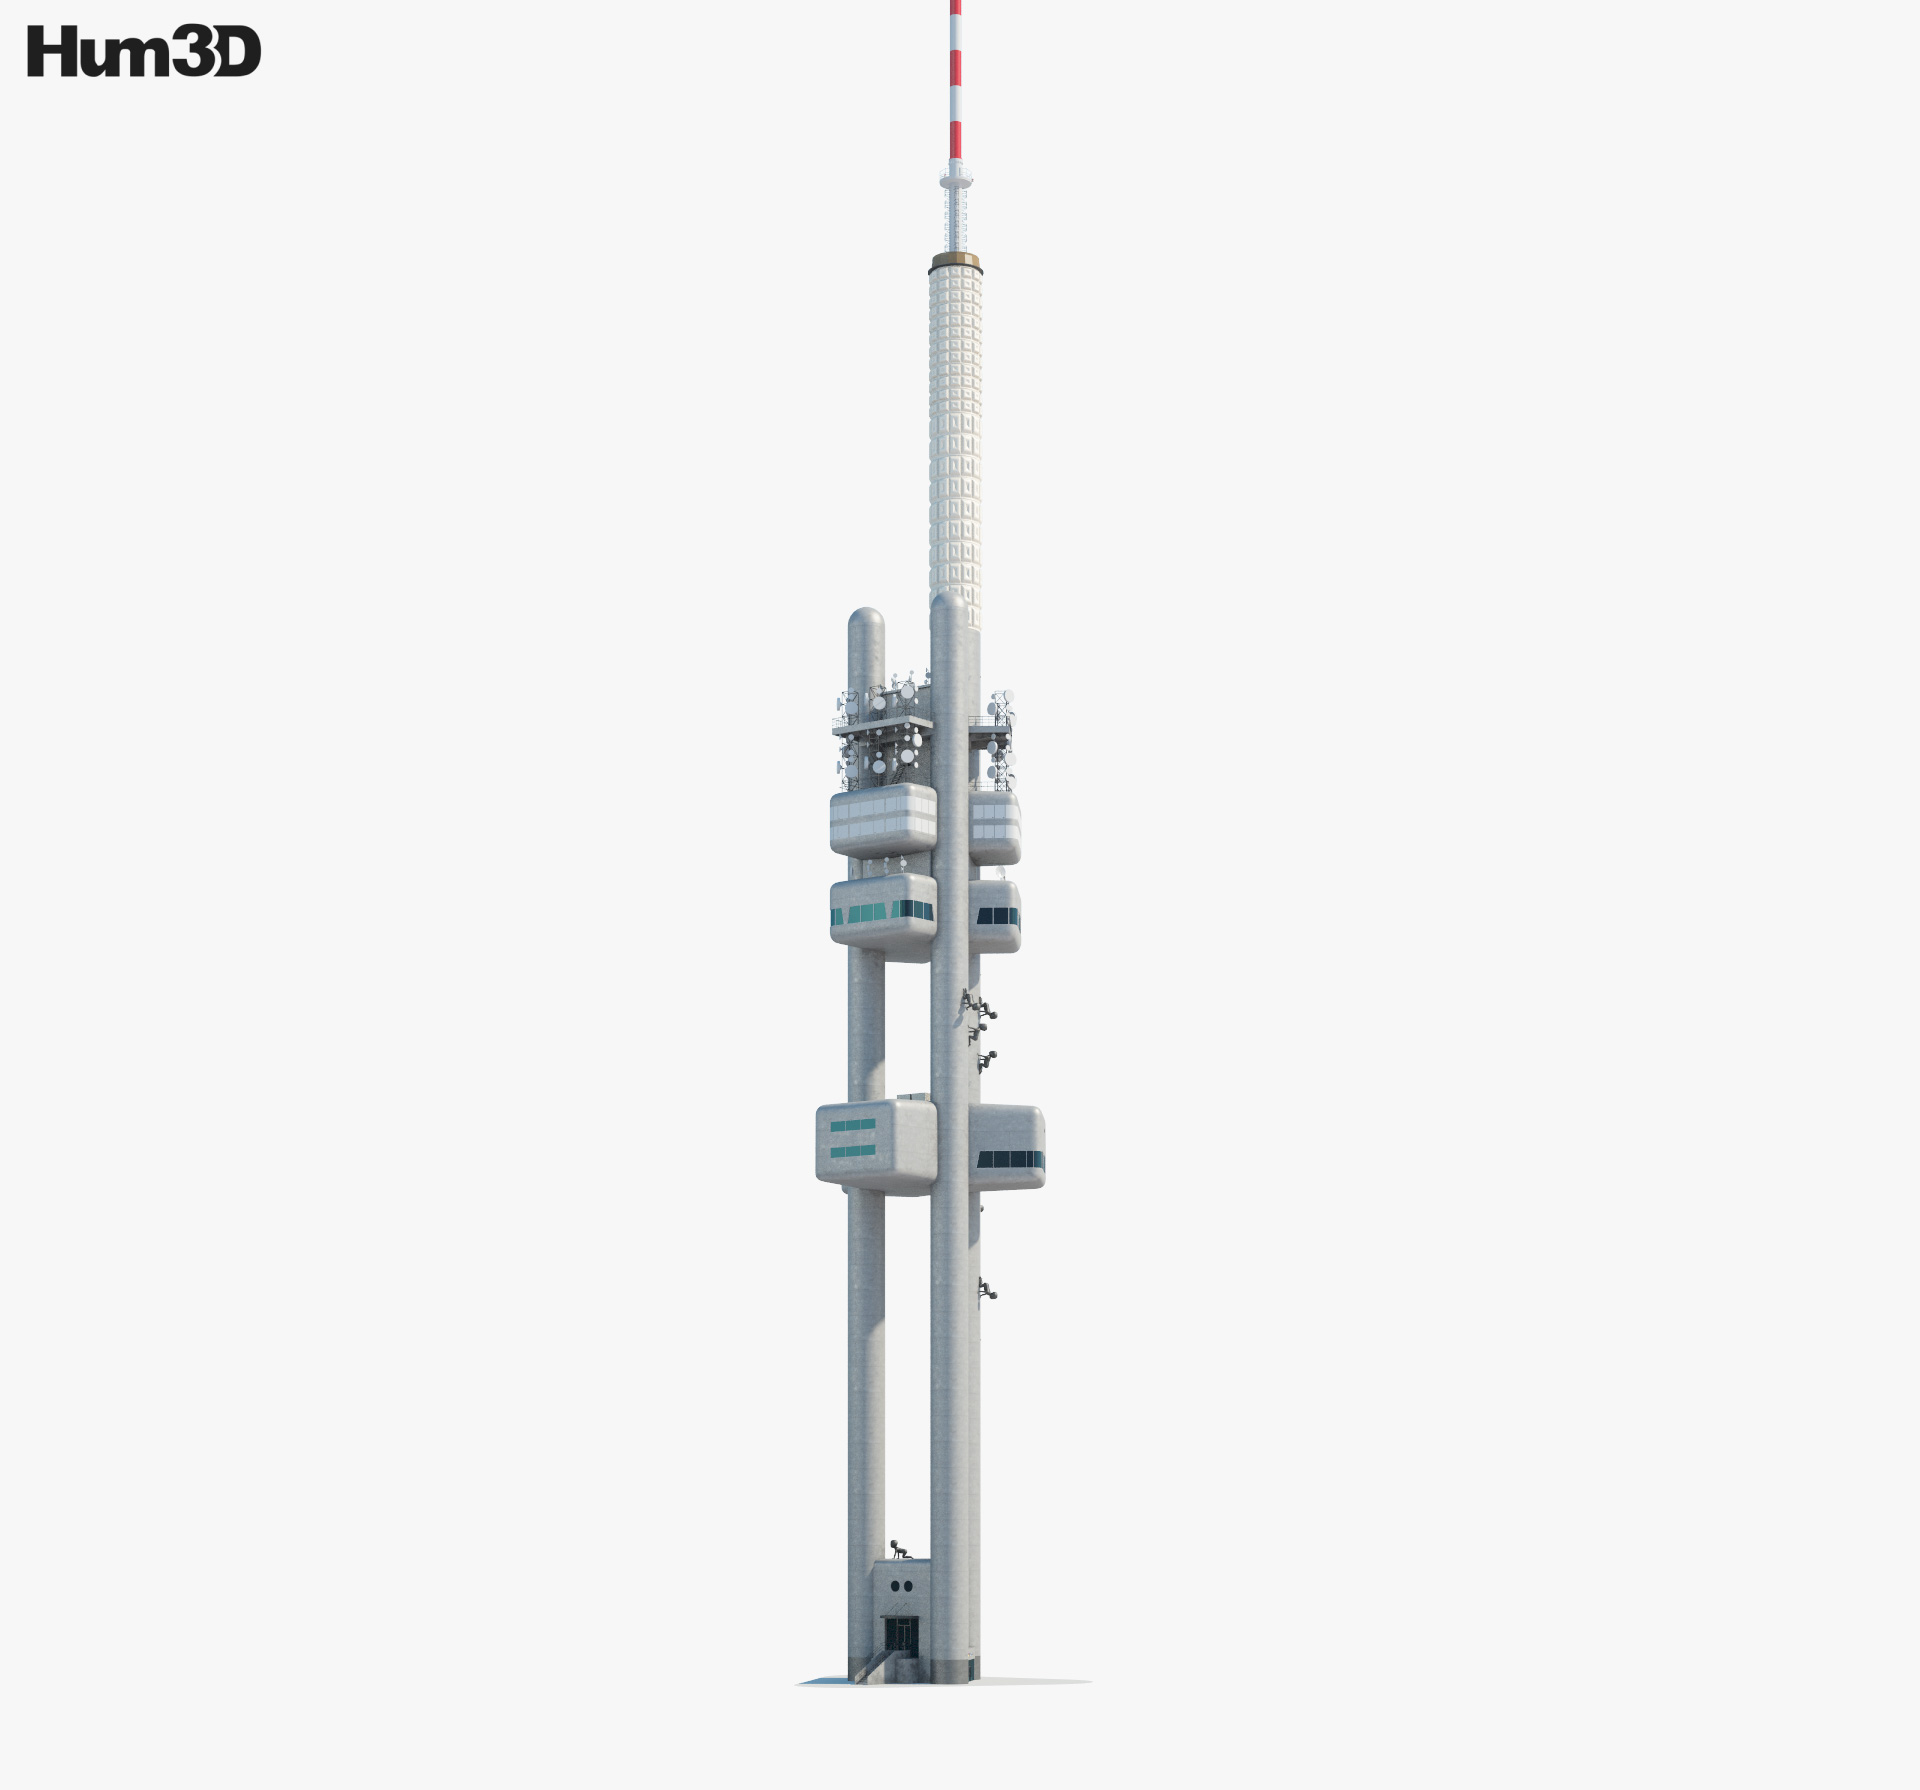 3D model of Zizkov Tower